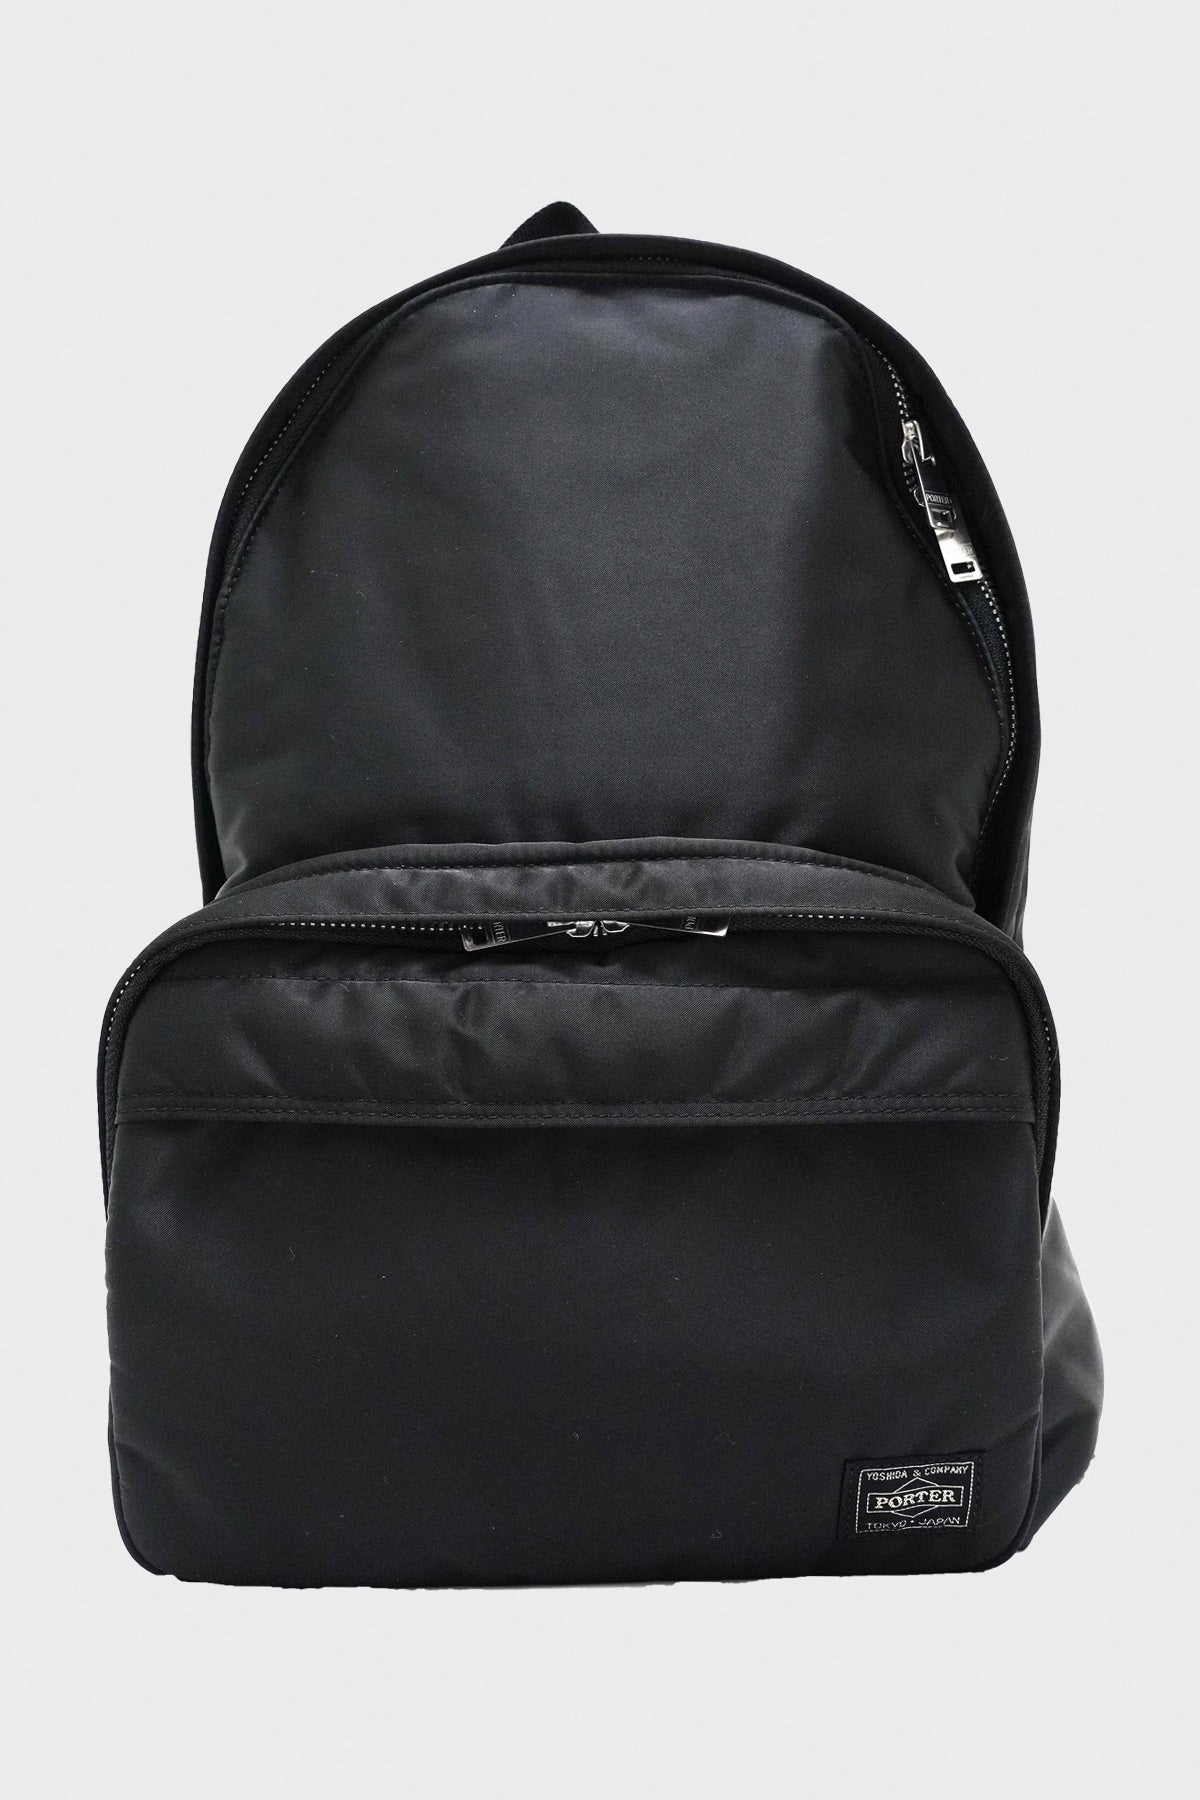 Porter Yoshida and Co - Day Pack - Black - Canoe Club